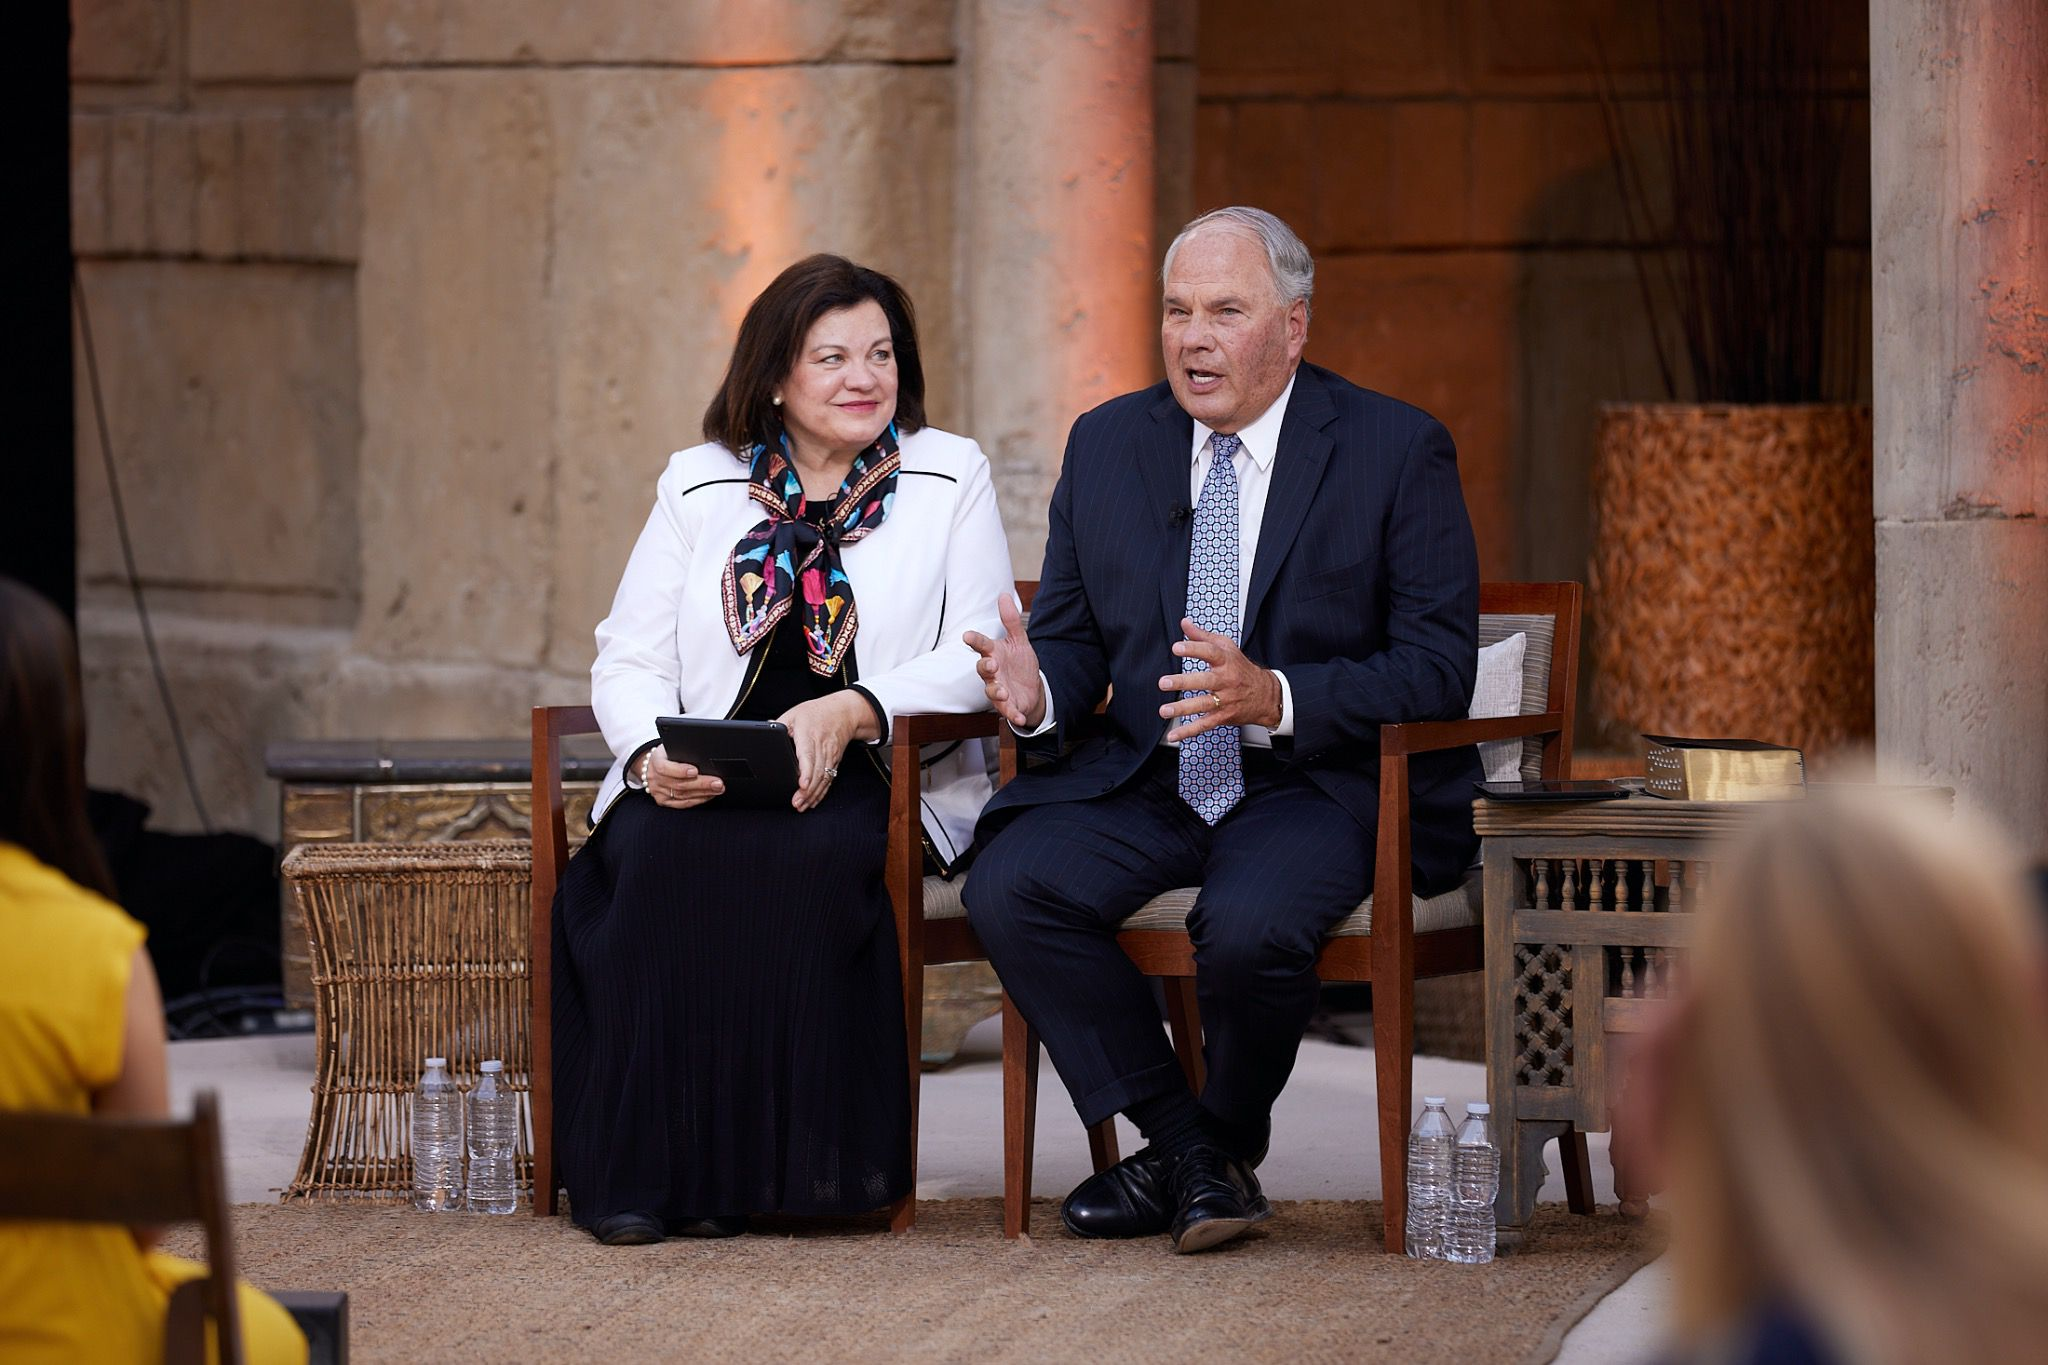 (File photo courtesy of The Church of Jesus Christ of Latter-day Saints) Apostle Ronald A. Rasband and his wife, Melanie, participate in a worldwide Face to Face event for Latter-day Saint young adults on Sunday, Sept. 13, 2020, in Goshen, Utah. The couple will speak this month in the all-virtual BYU Women's Conference.